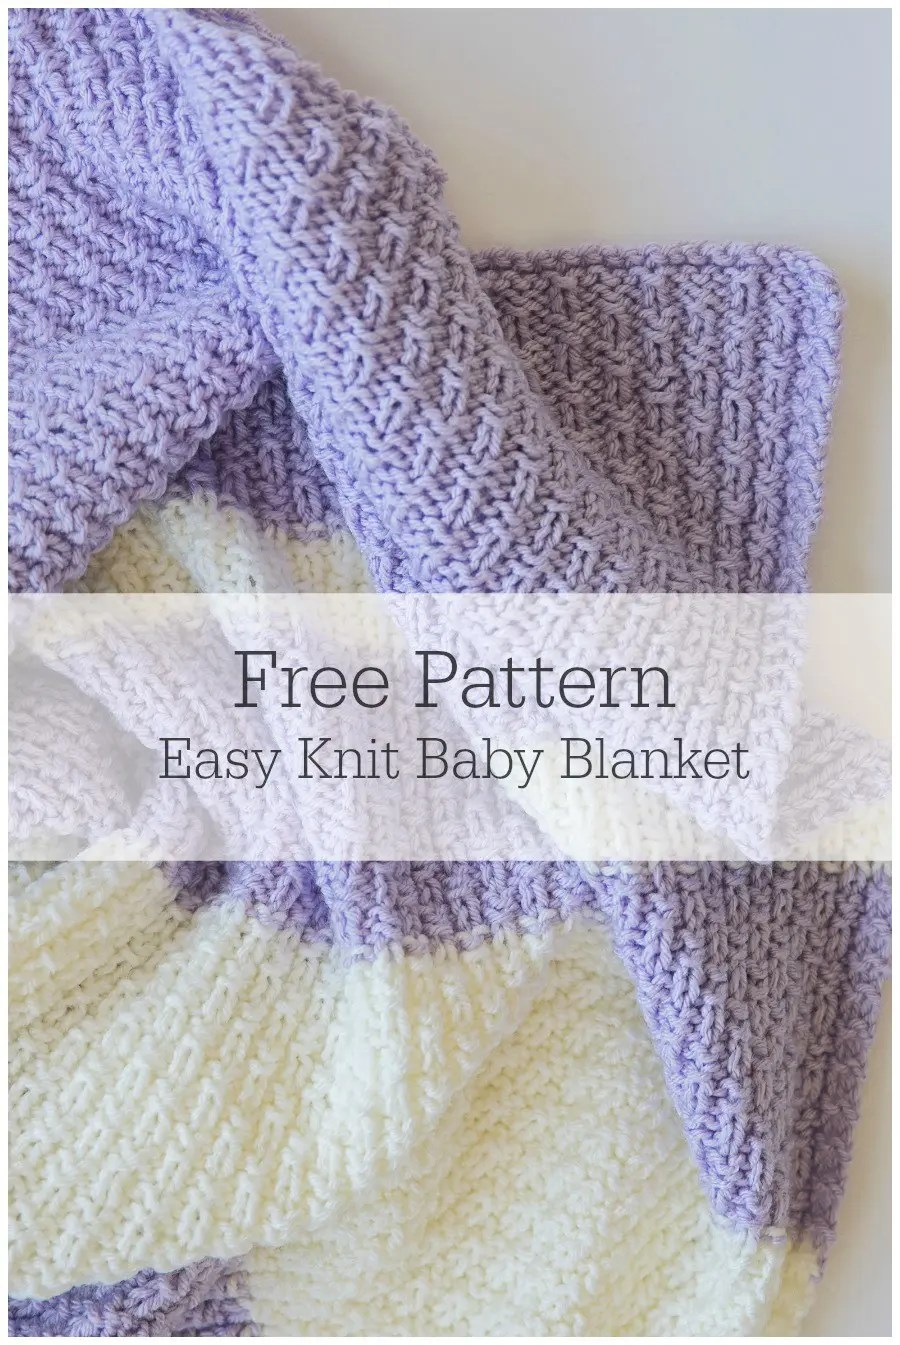 Easy Knitting Baby Patterns : Easy Knit Baby Blanket Pattern - Leelee KnitsLeelee Knits